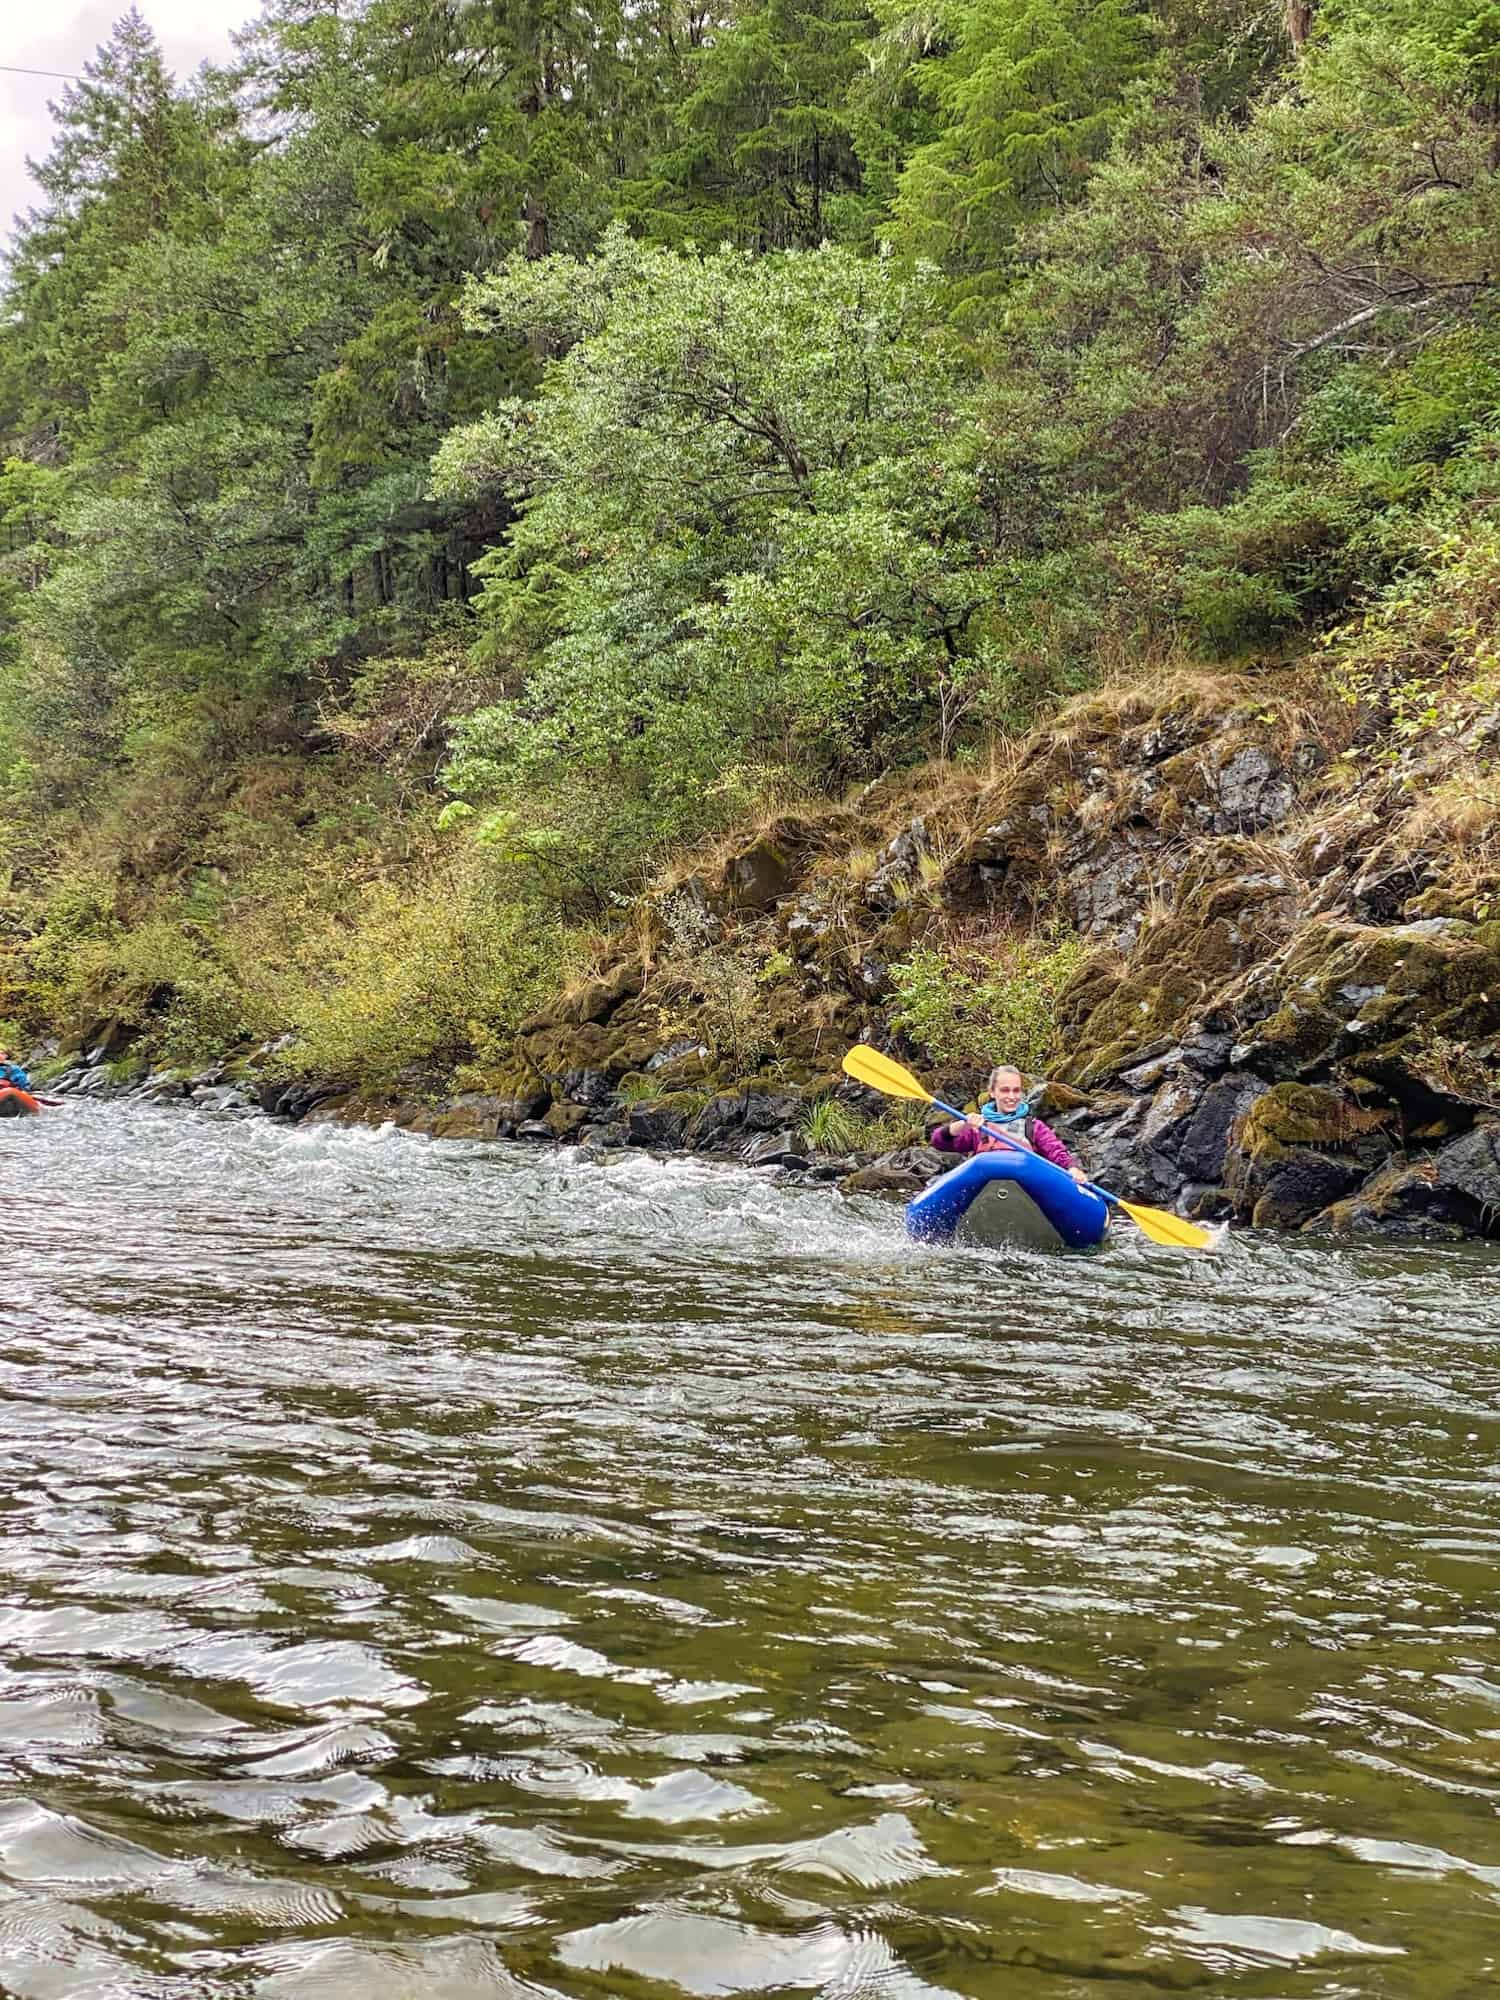 Crescent City - Floating the Smith River